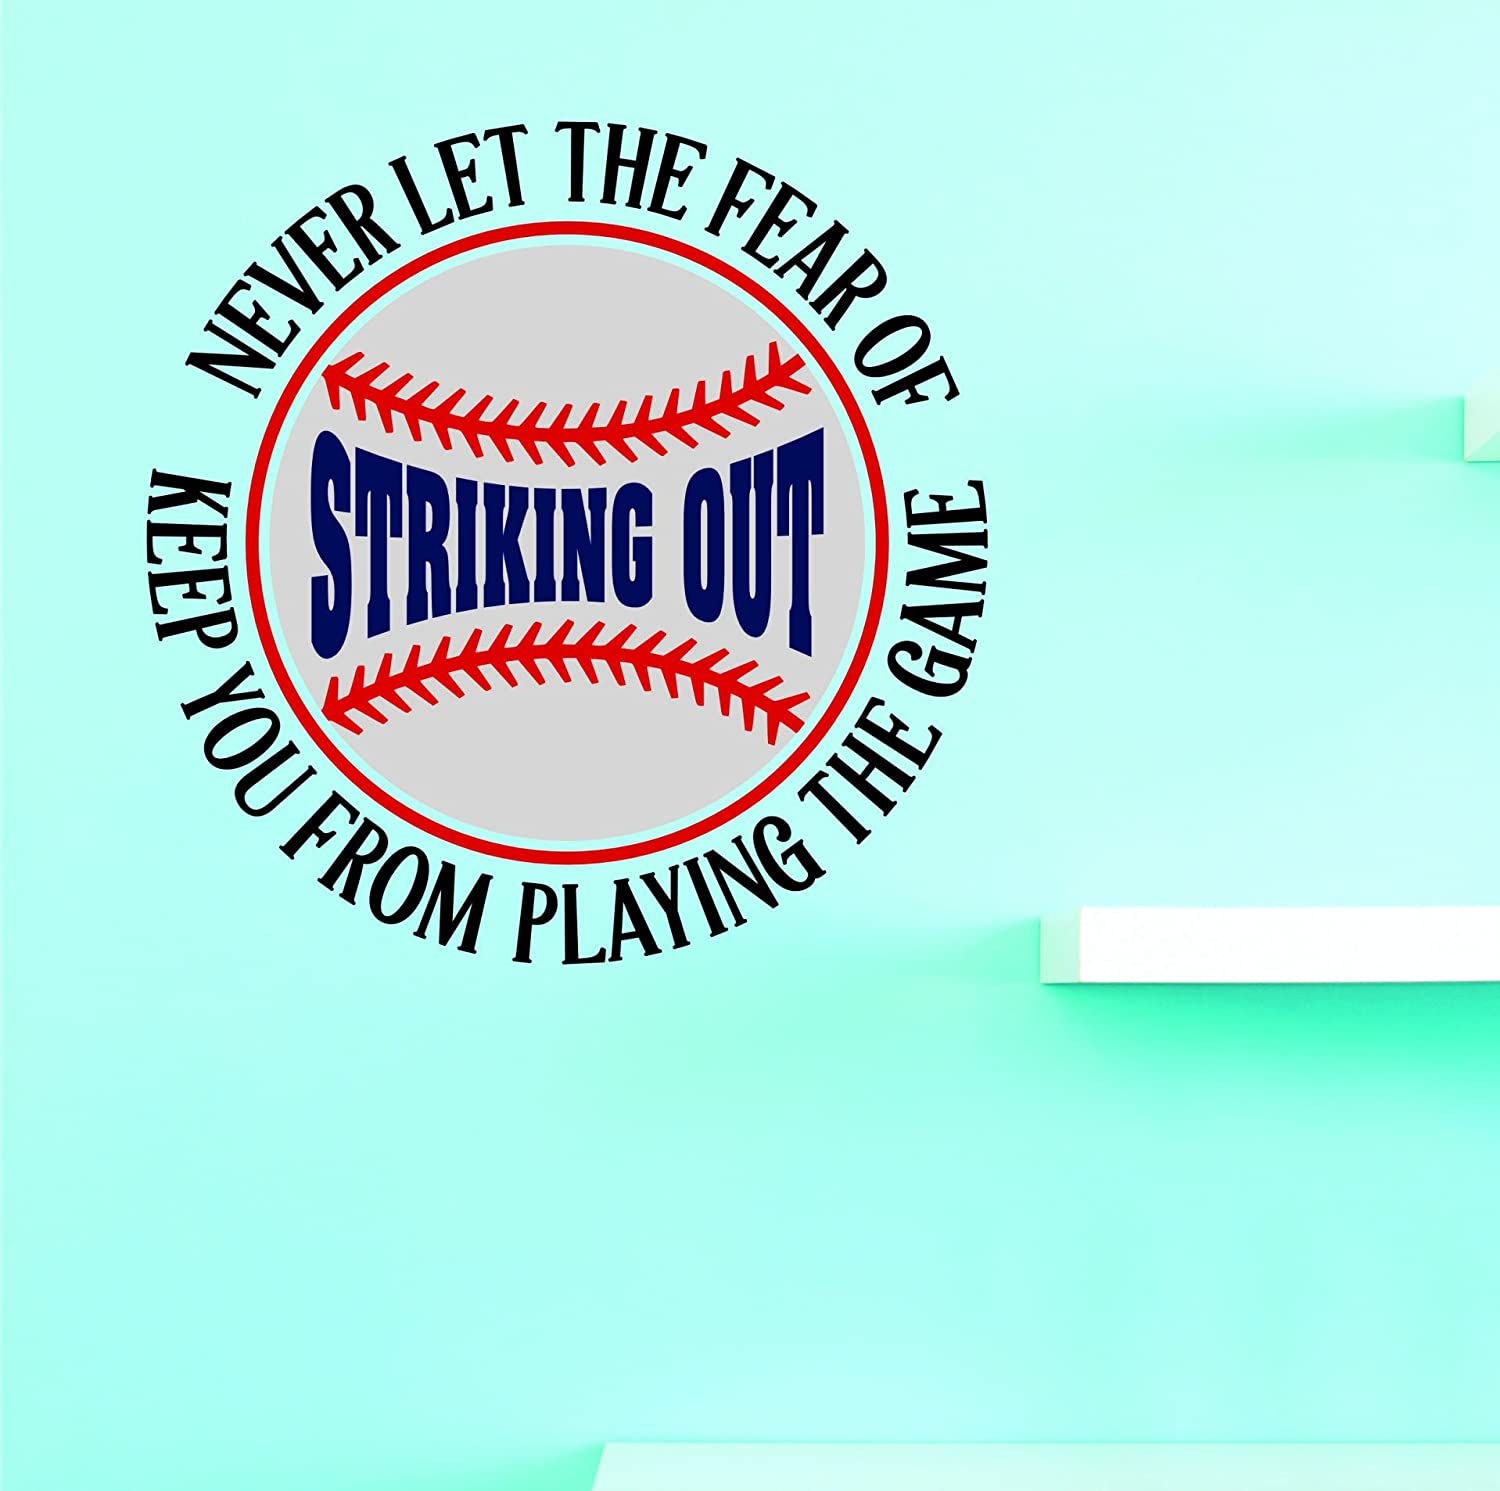 18 x 18, Wall Art Size x 18 Inches Color Design with Vinyl JER 2304 3 Hot New Decals Never let The Fear of Striking Out Keep You from Playing The Game Multi